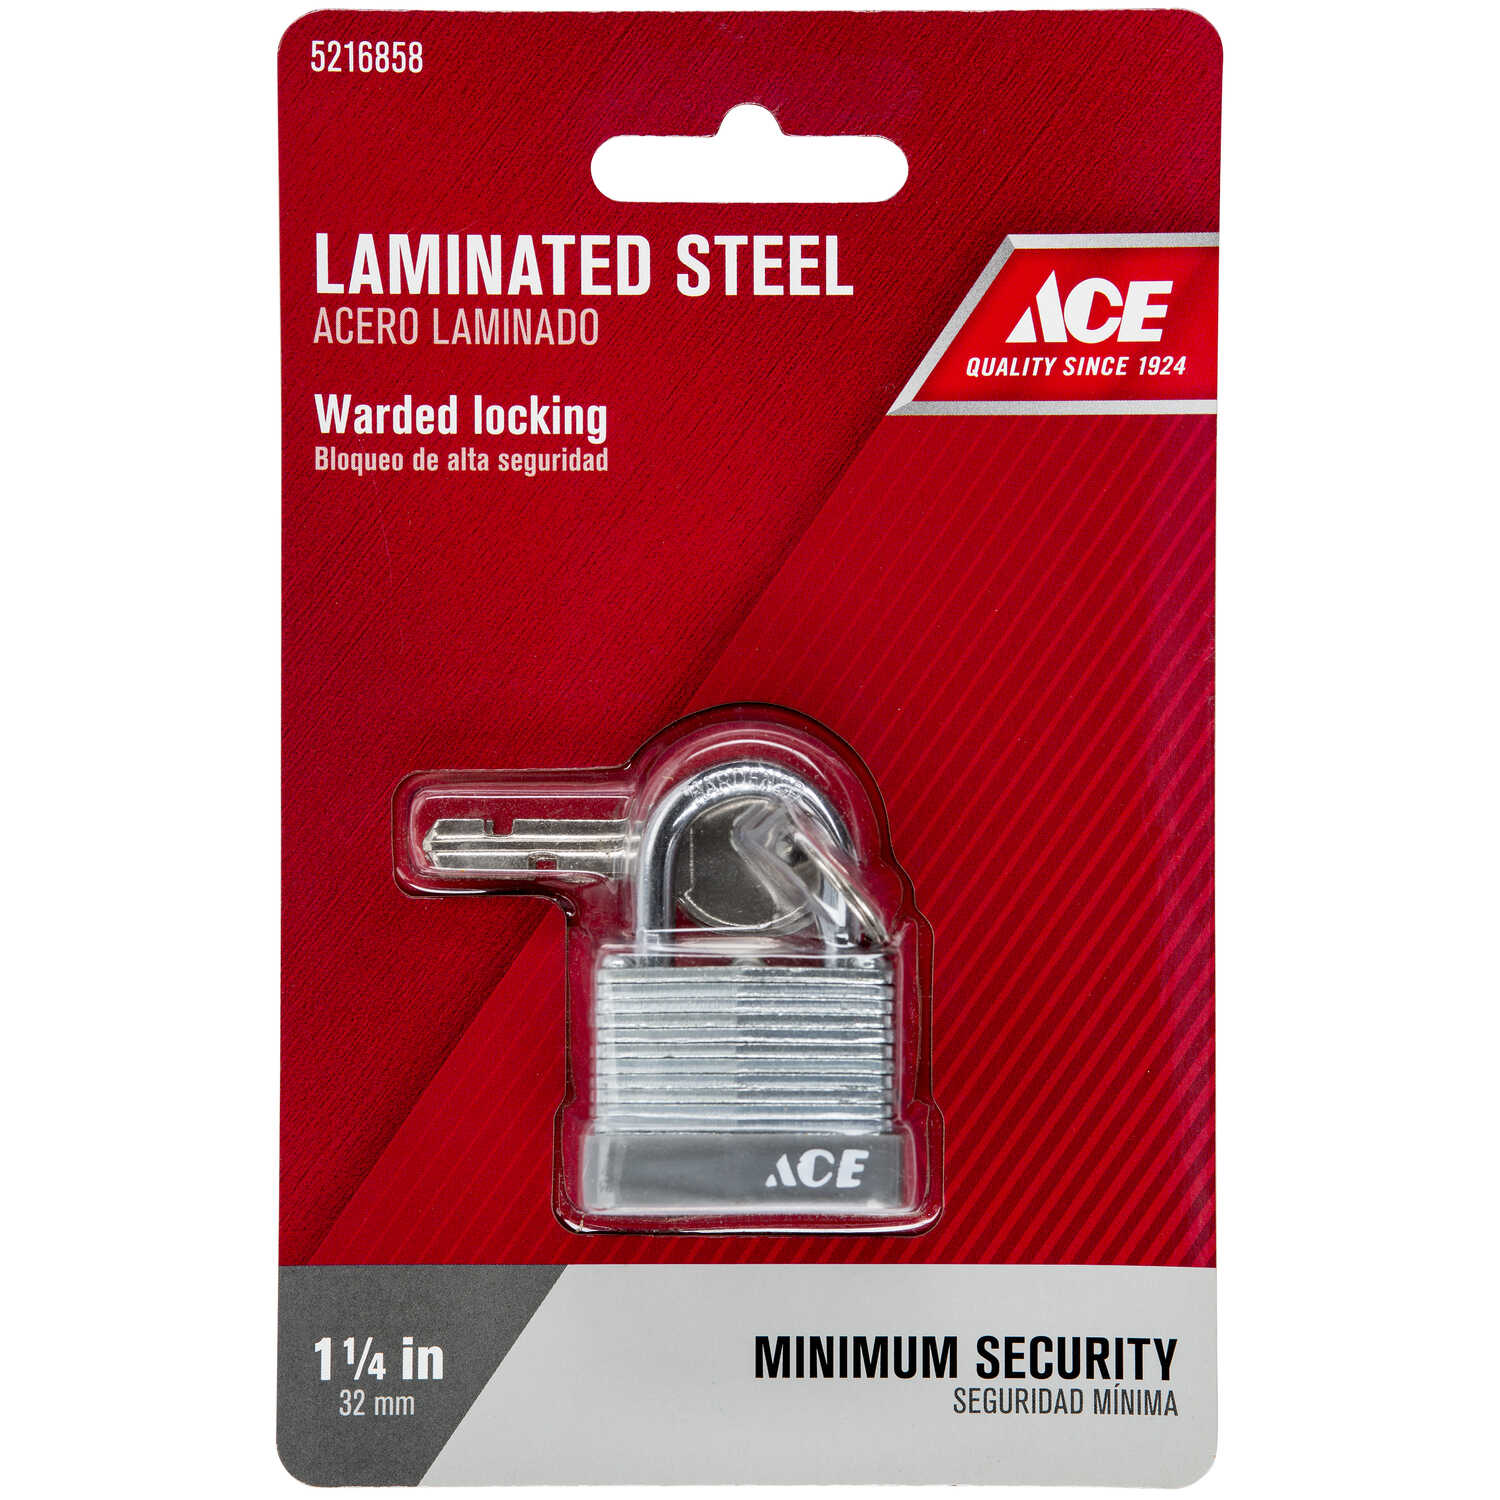 Ace  15/16 in. H x 1-1/4 in. W x 11/16 in. L Laminated Steel  Warded Locking  Padlock  1 pk